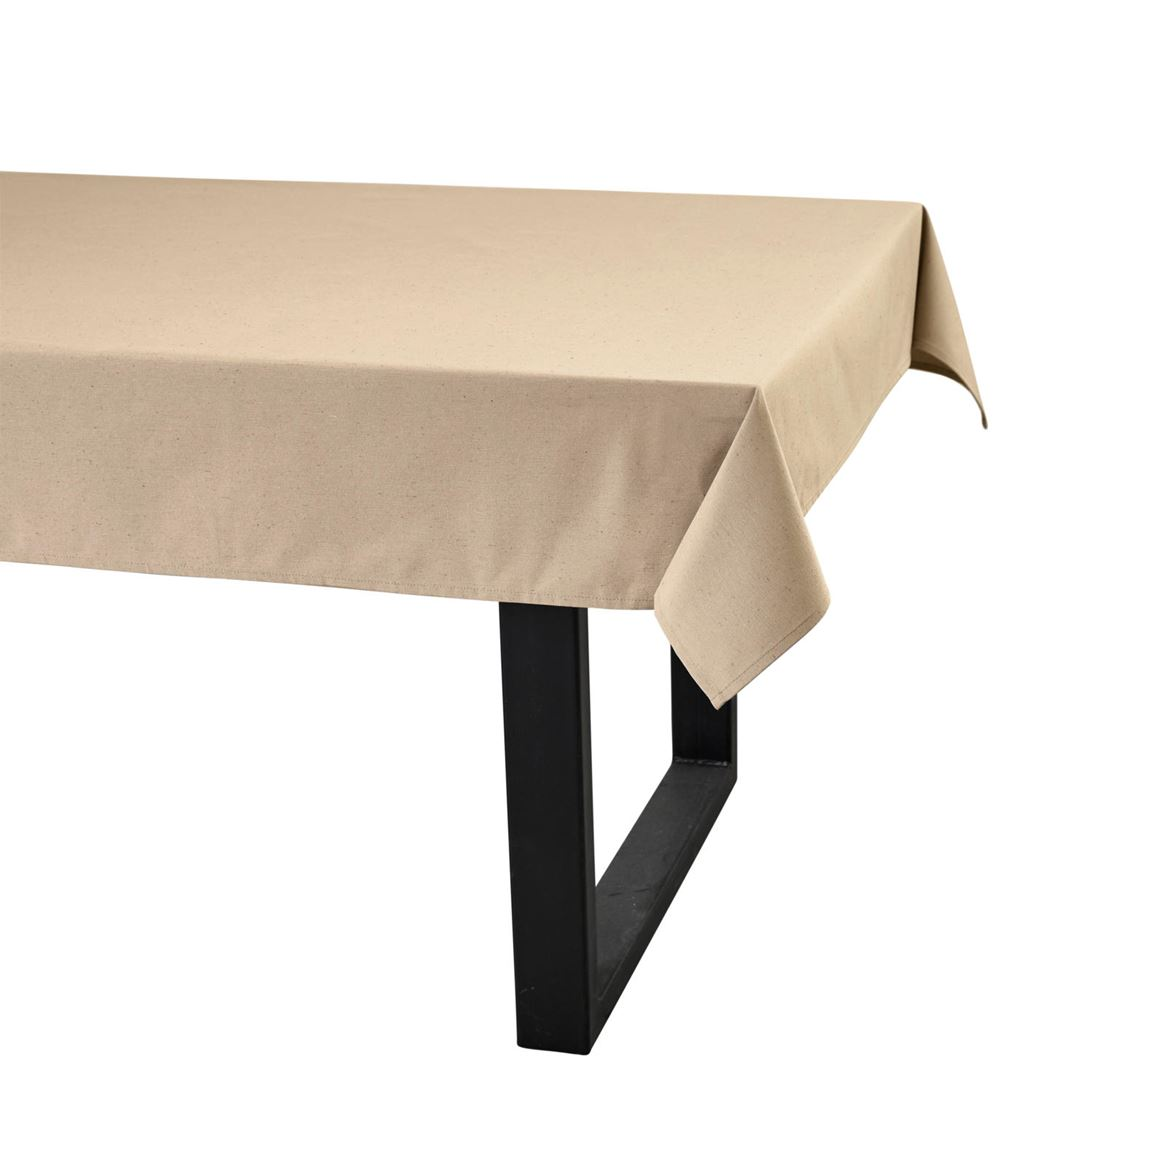 RECYCLE Nappe taupe Larg. 138 x Long. 300 cm_recycle-nappe-taupe-larg--138-x-long--300-cm